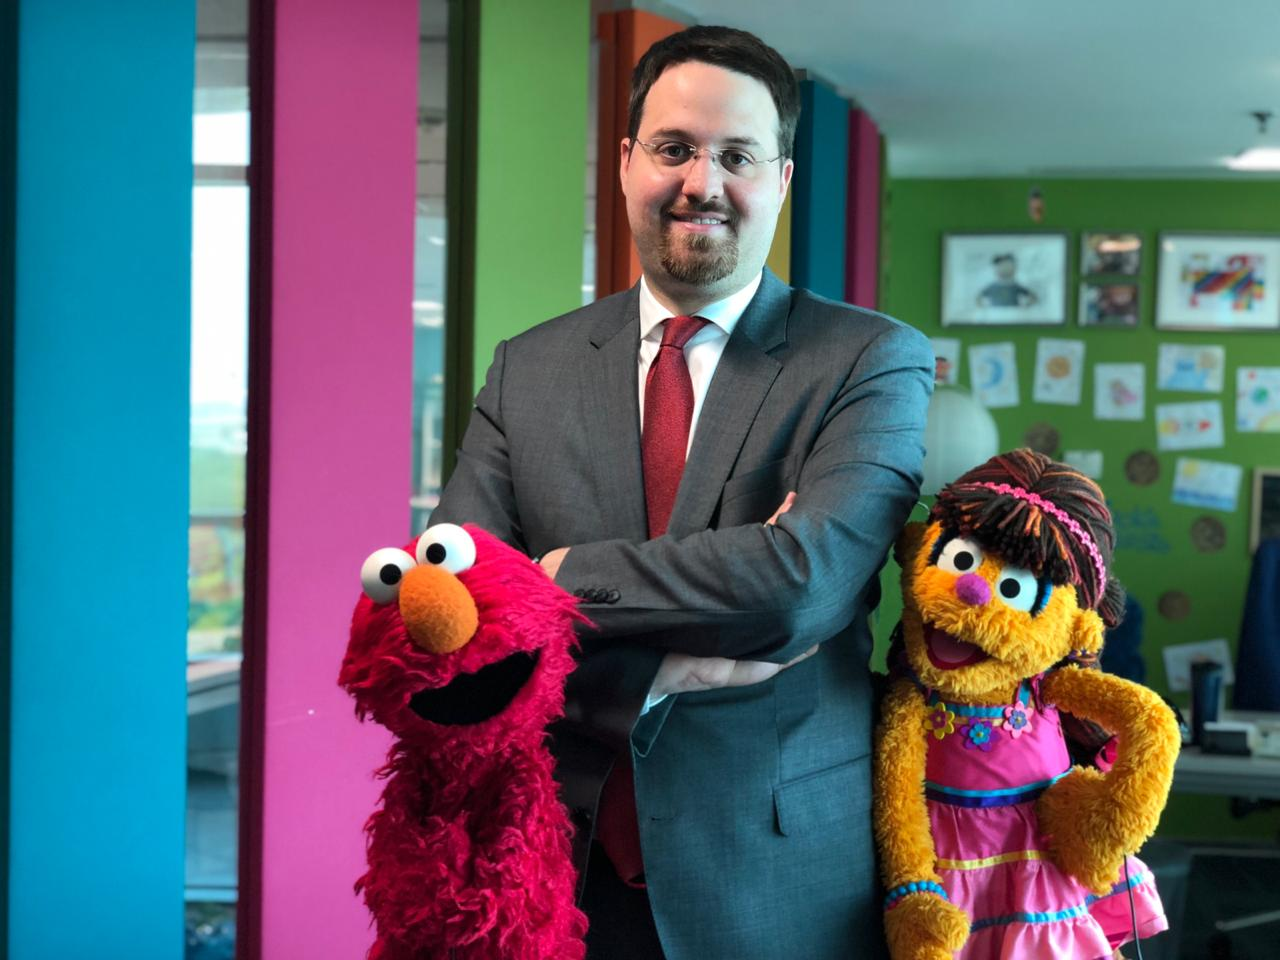 Bidaya Media Appoints New CEO While Its Flagship Show 'Iftah Ya Simsim' Launches Season 3 to inspire children this Ramadan